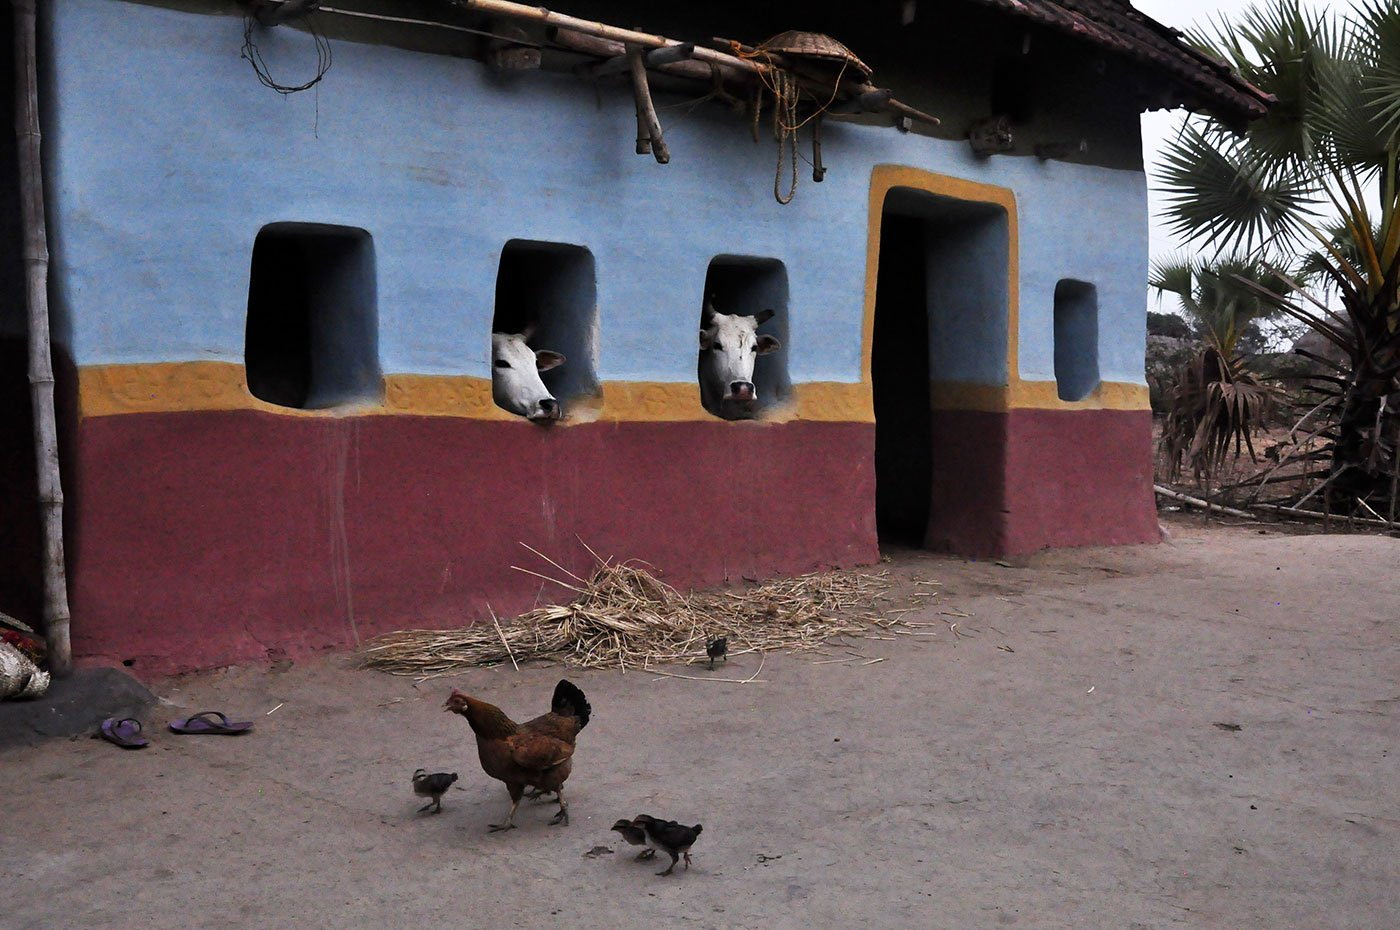 05-Nalhati-qc-112-MM-Bamli's House.jpg